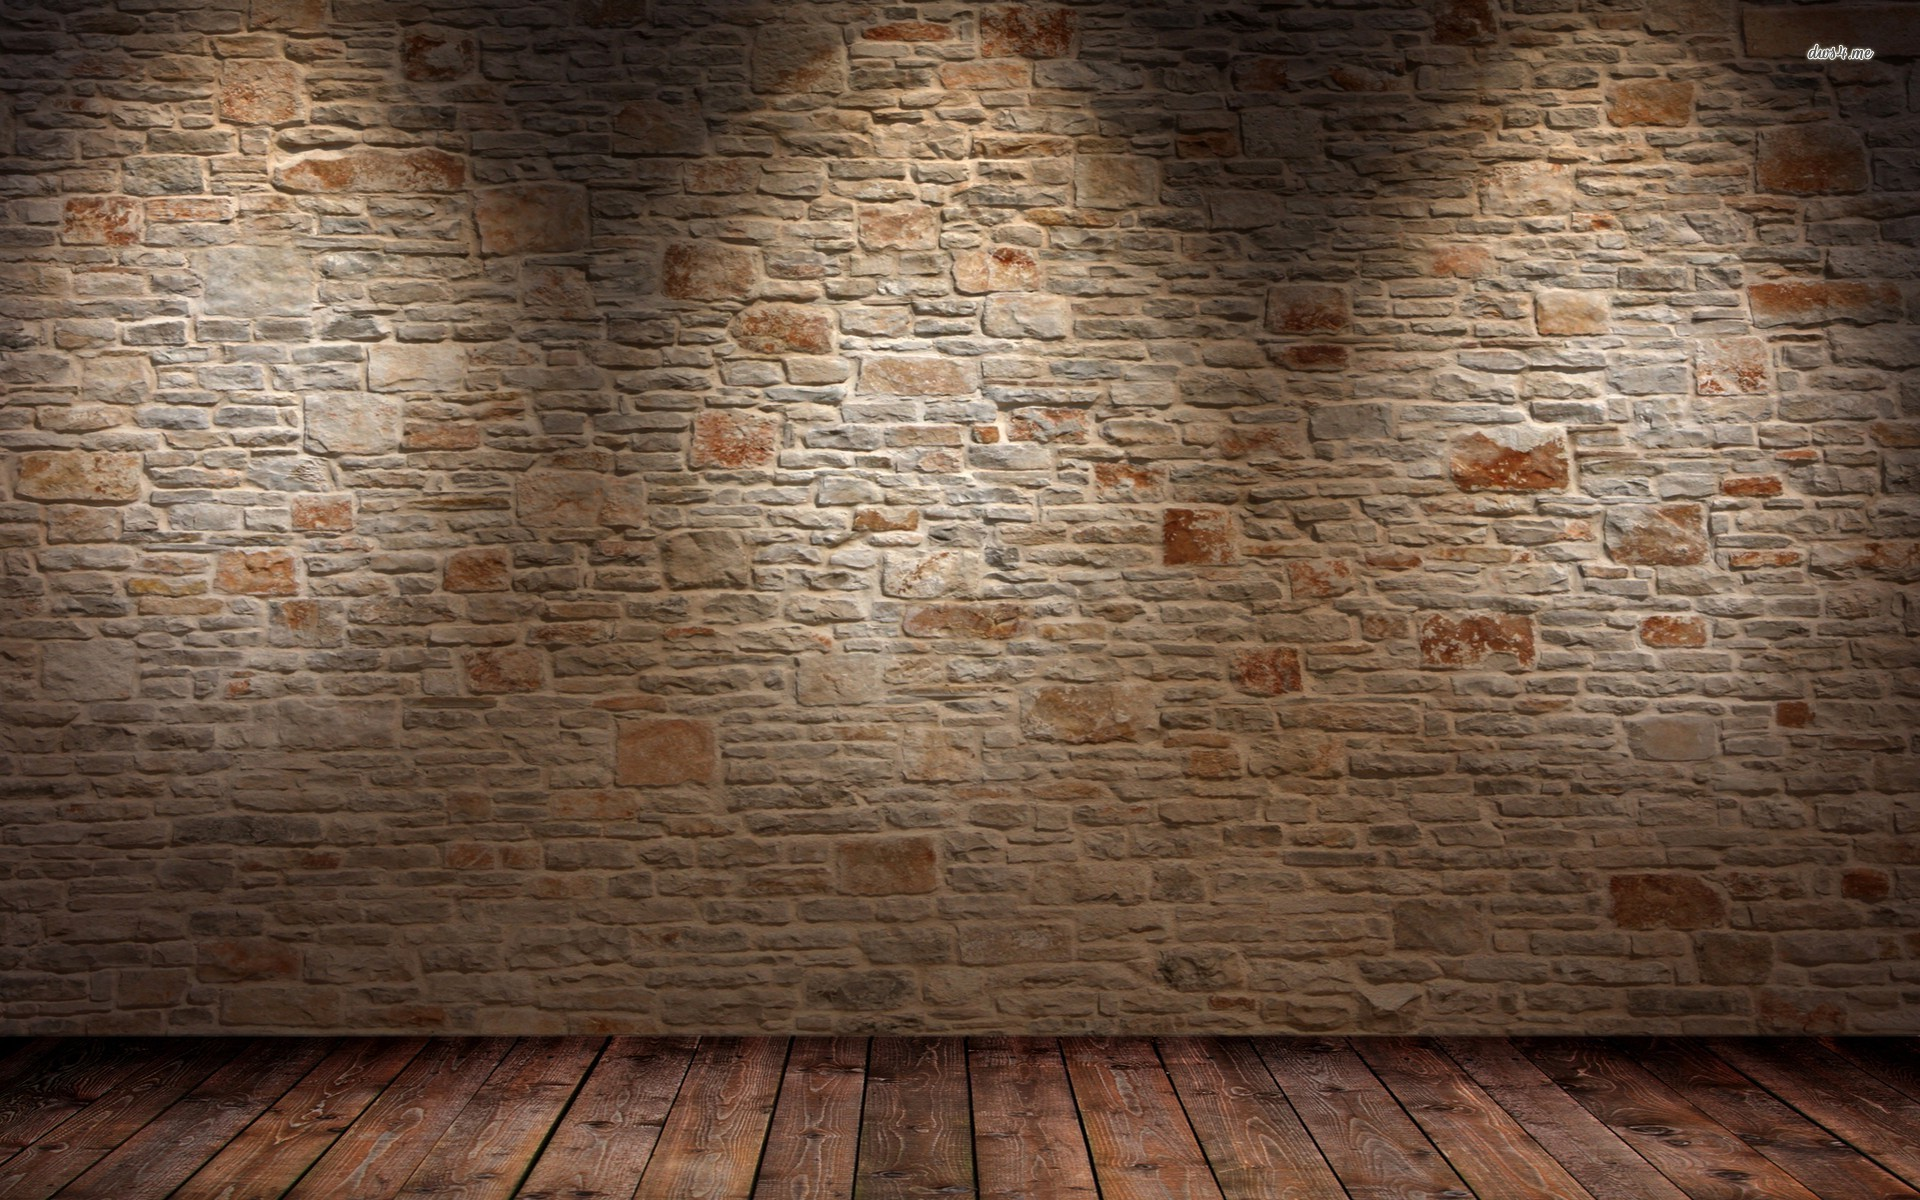 Wooden Floor clipart brick wallpaper HD Abstract with wood Brick